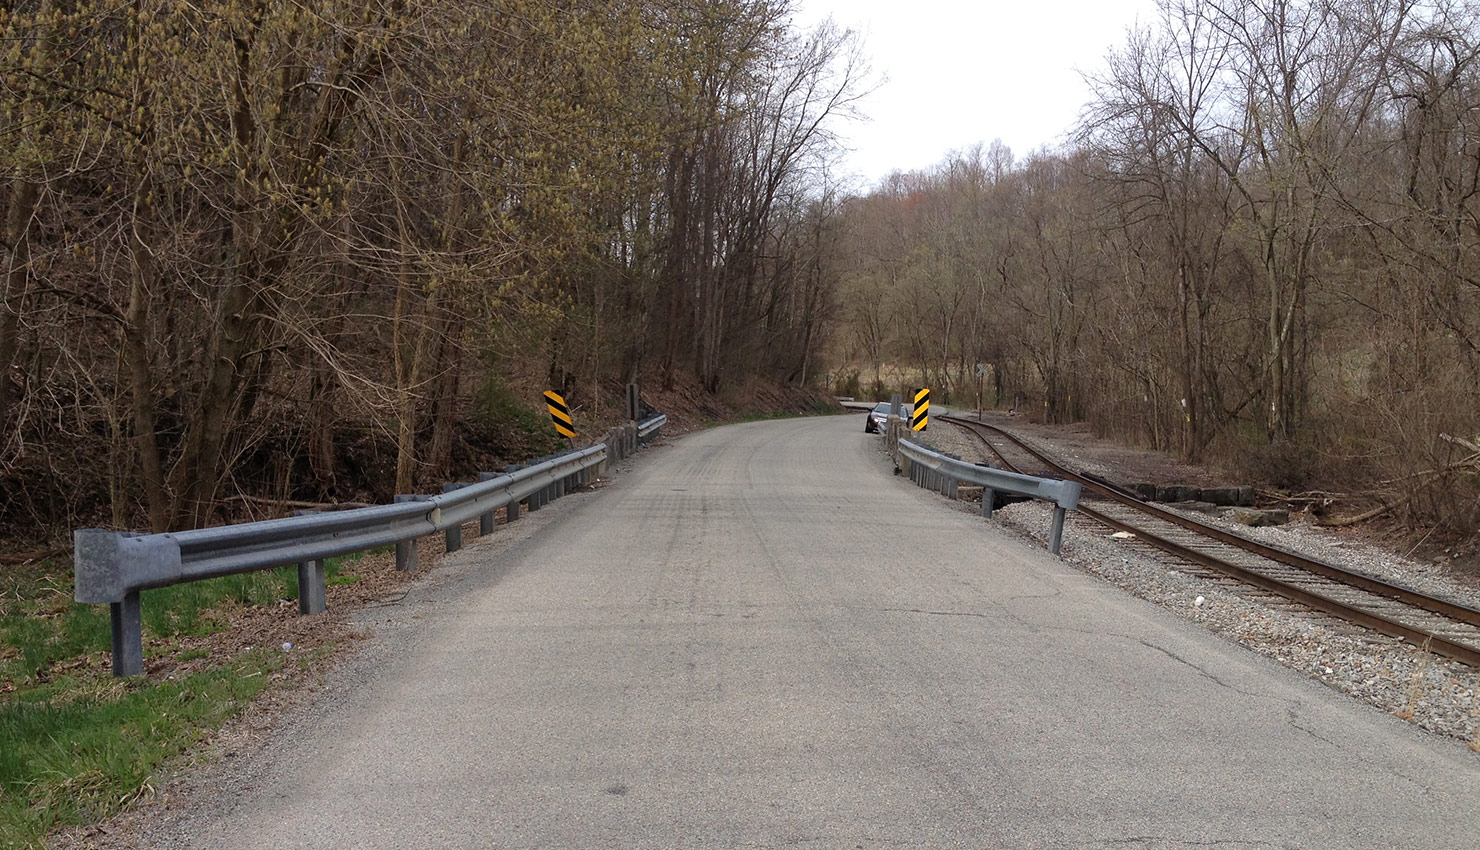 Construction To Begin On Broadford Road Route 1031